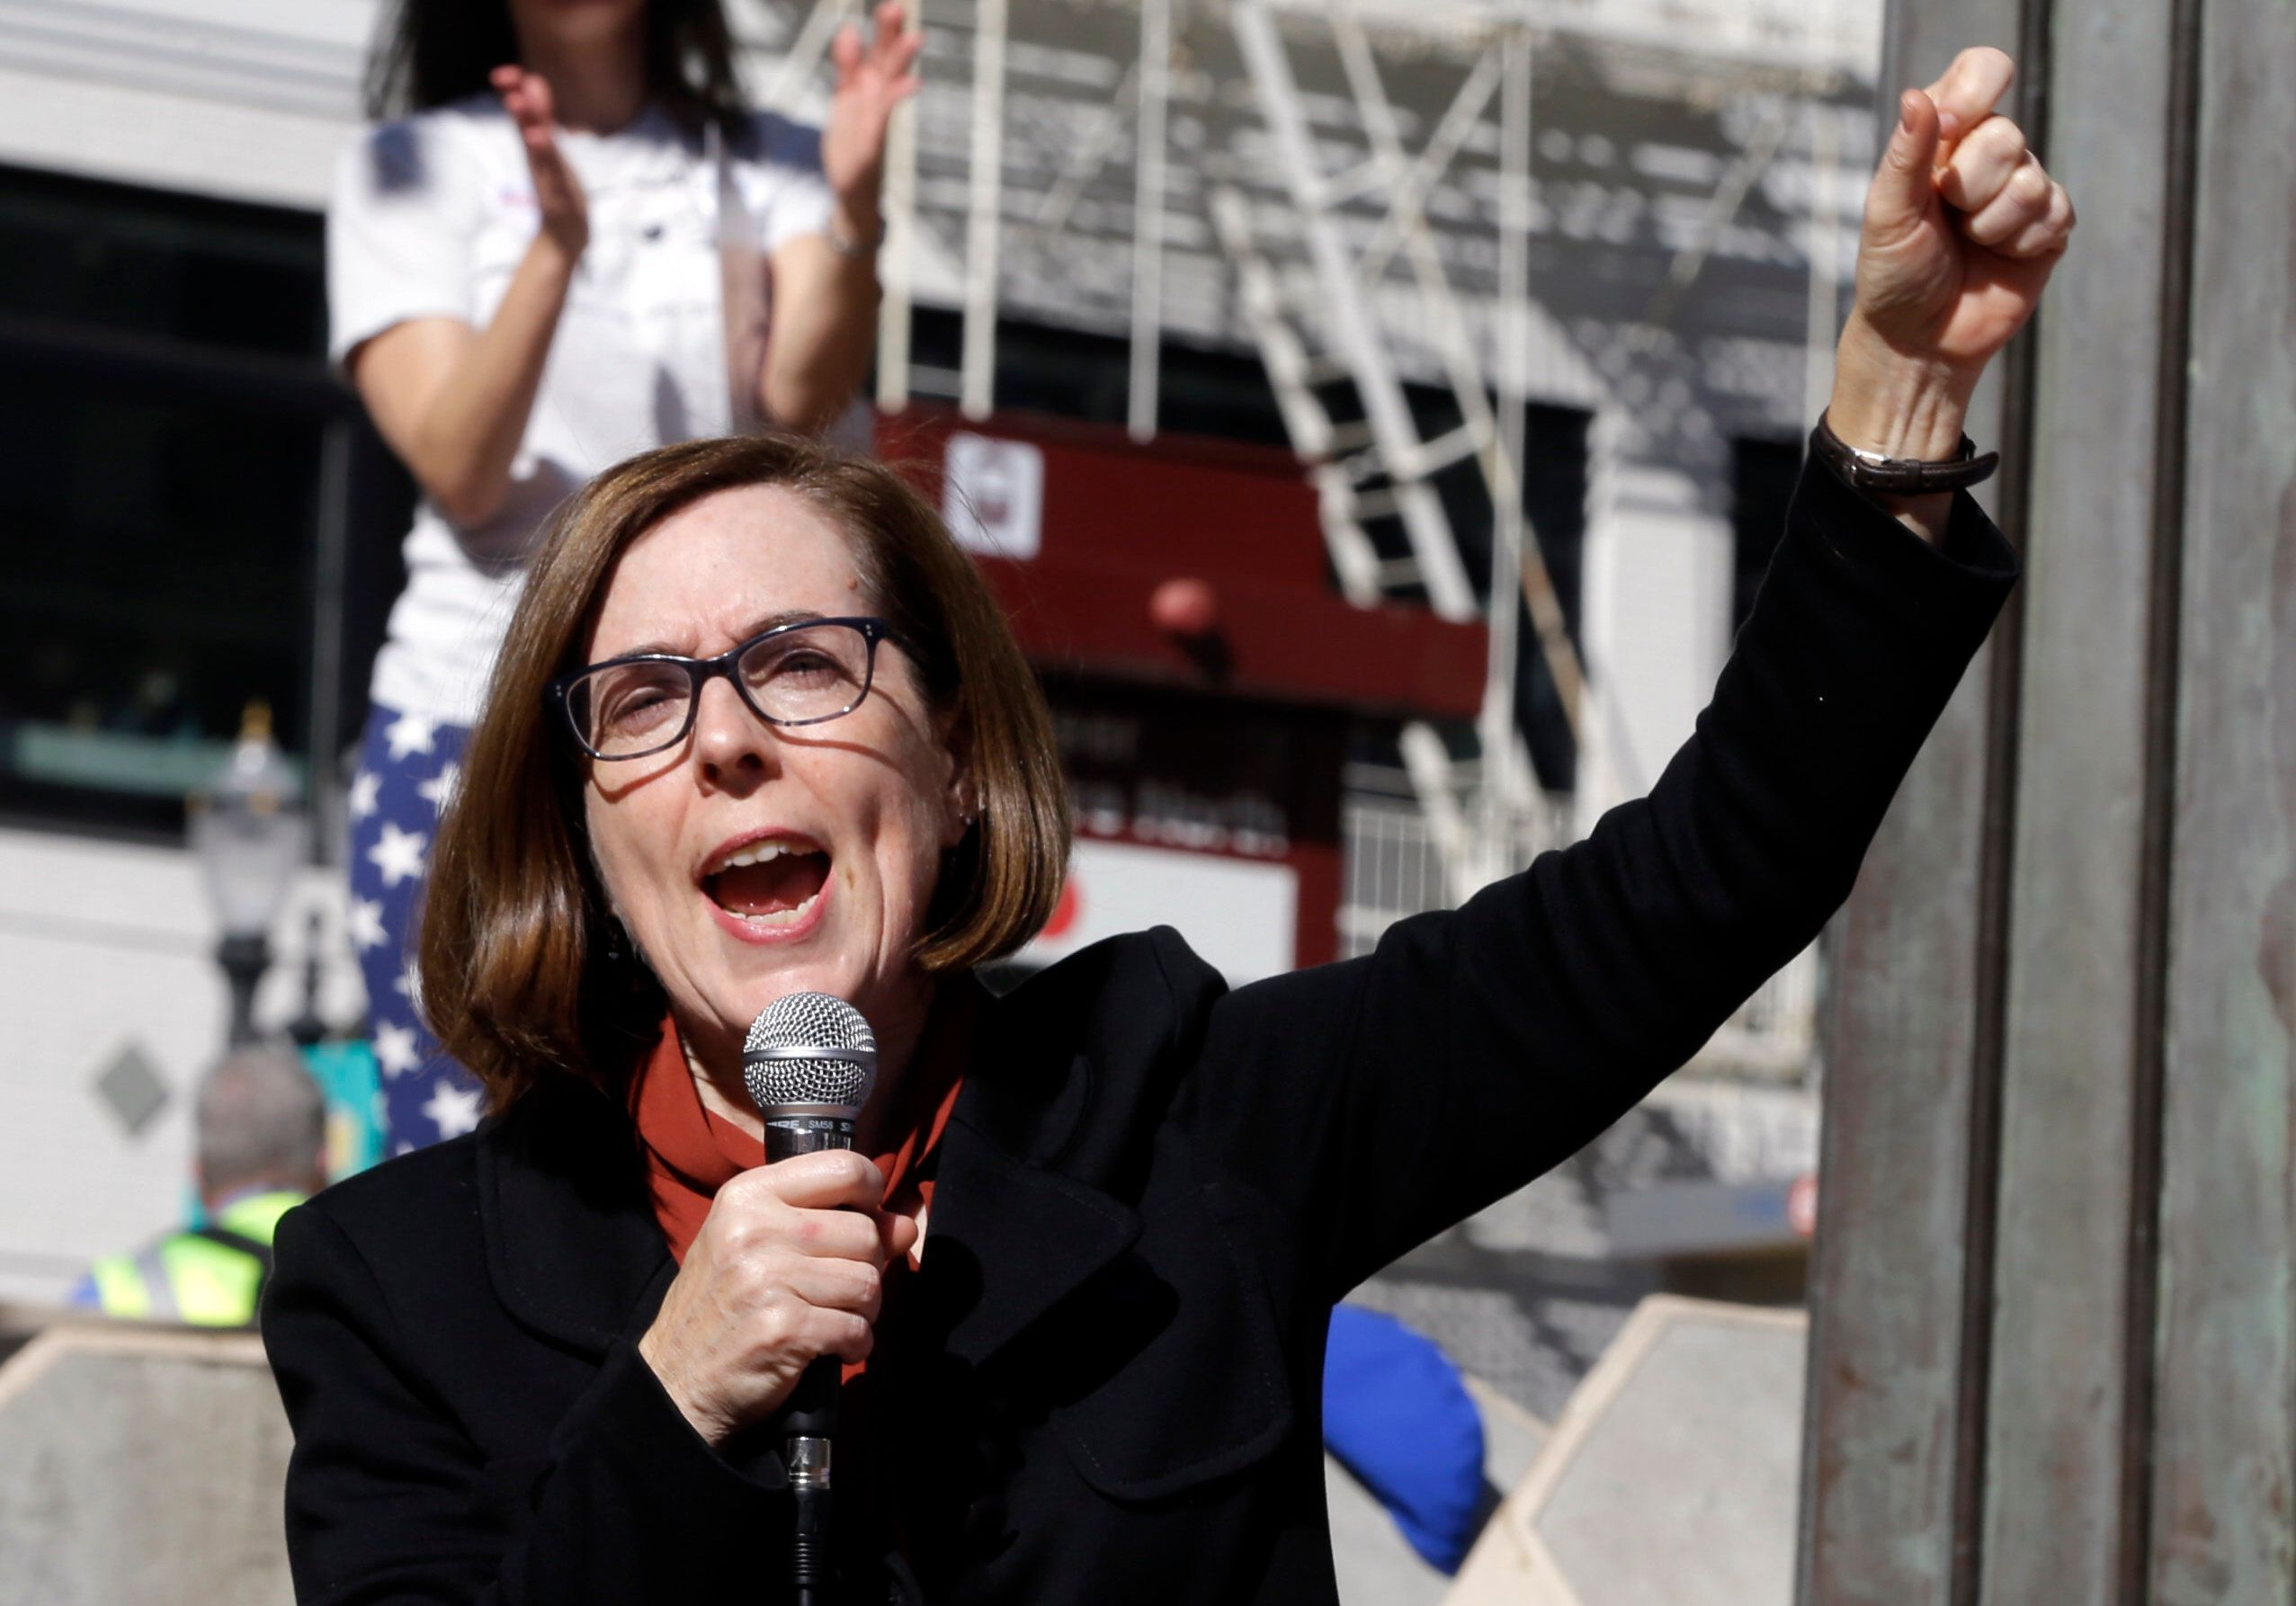 WASHINGTON ― Oregon Gov. Kate Brown (D) won re-election Tuesday night despite